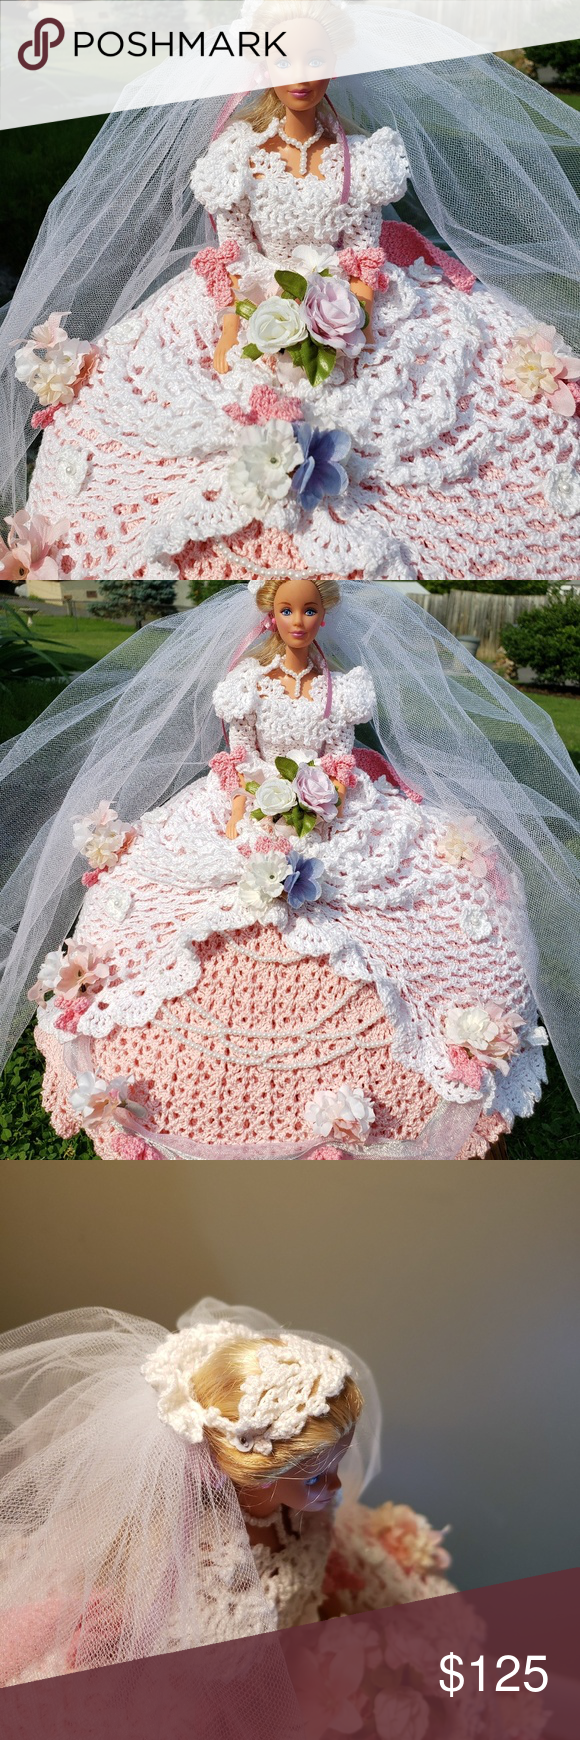 Fairy tale Bride doll, pink crochet Fairy Tale Bride Doll, crochet dress, Handmade, She is a bed doll, made to sit on your bed, Dhe is nicely decorated with flowers head piece and veil handmade Accents Accent Pillows #bridedolls